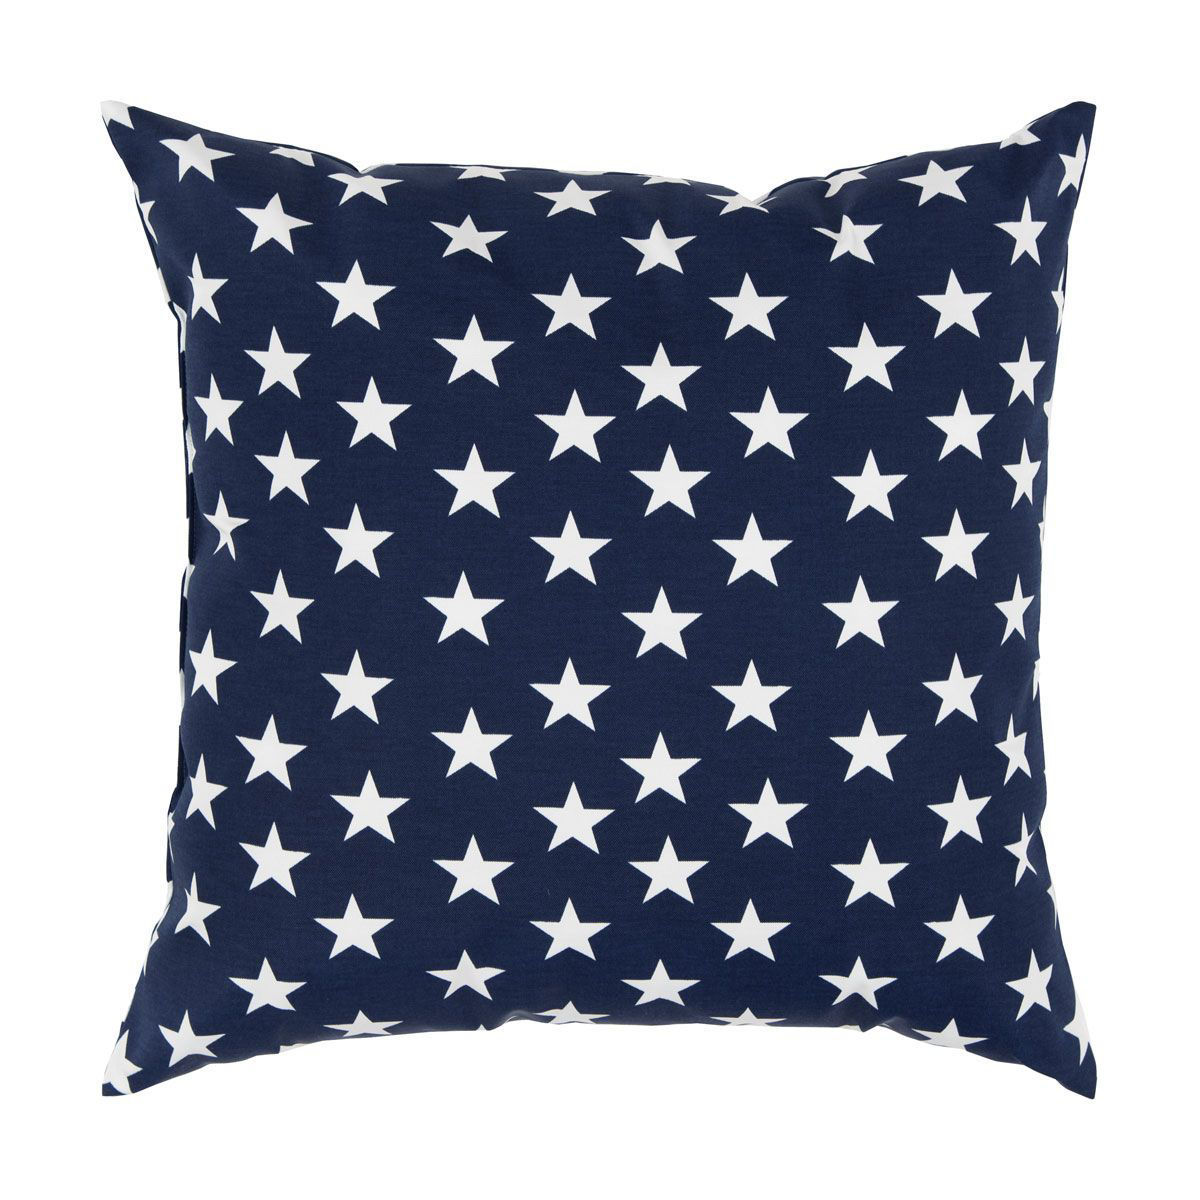 Picture of STAR PRINTED COTTON THROW PILLOW